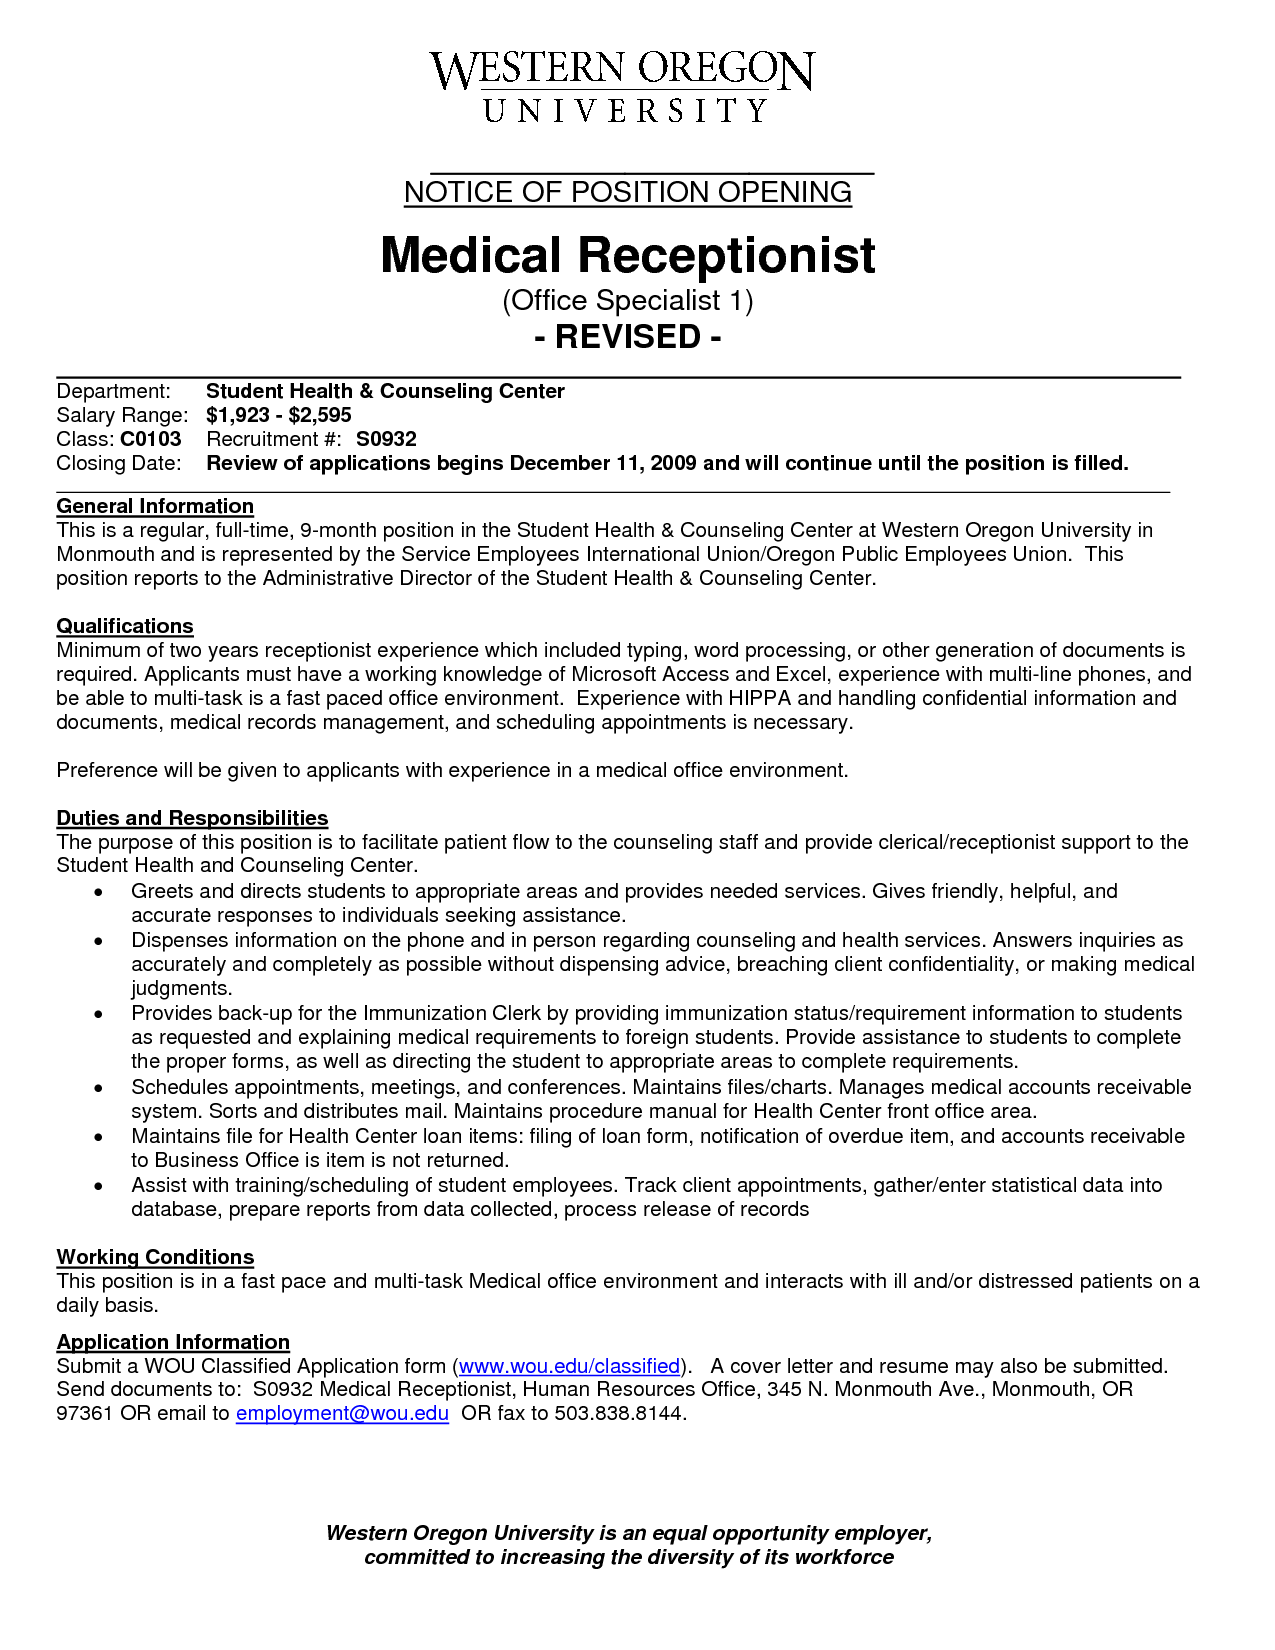 cover letter for medical receptionist position with no experience Sample cover letters for a receptionist position, what to include in your letter, how to format it, and more cover letter examples and writing tips.